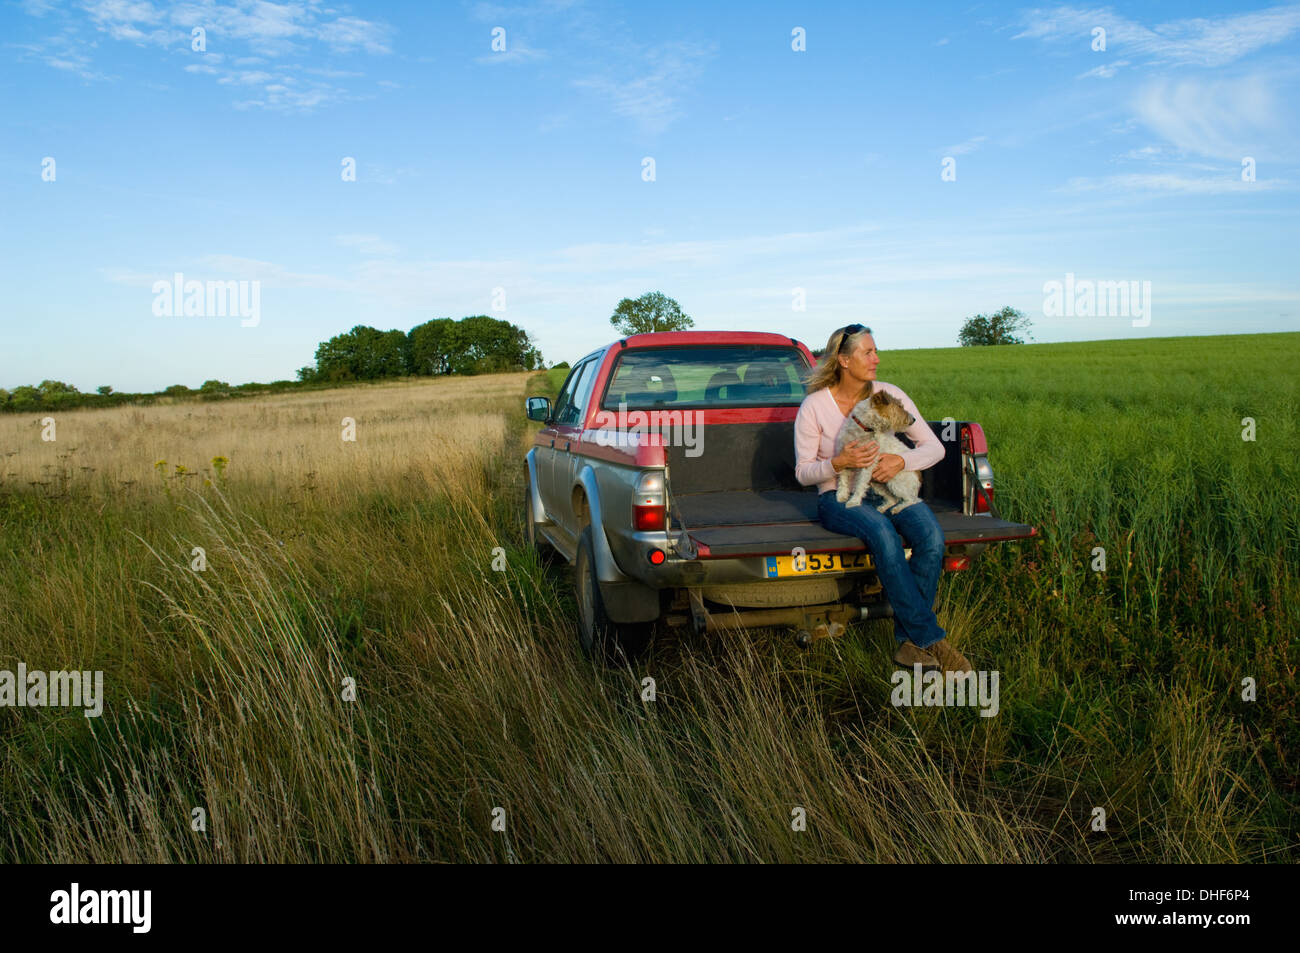 Woman sitting on back of pick up truck in a field, holding a dog - Stock Image